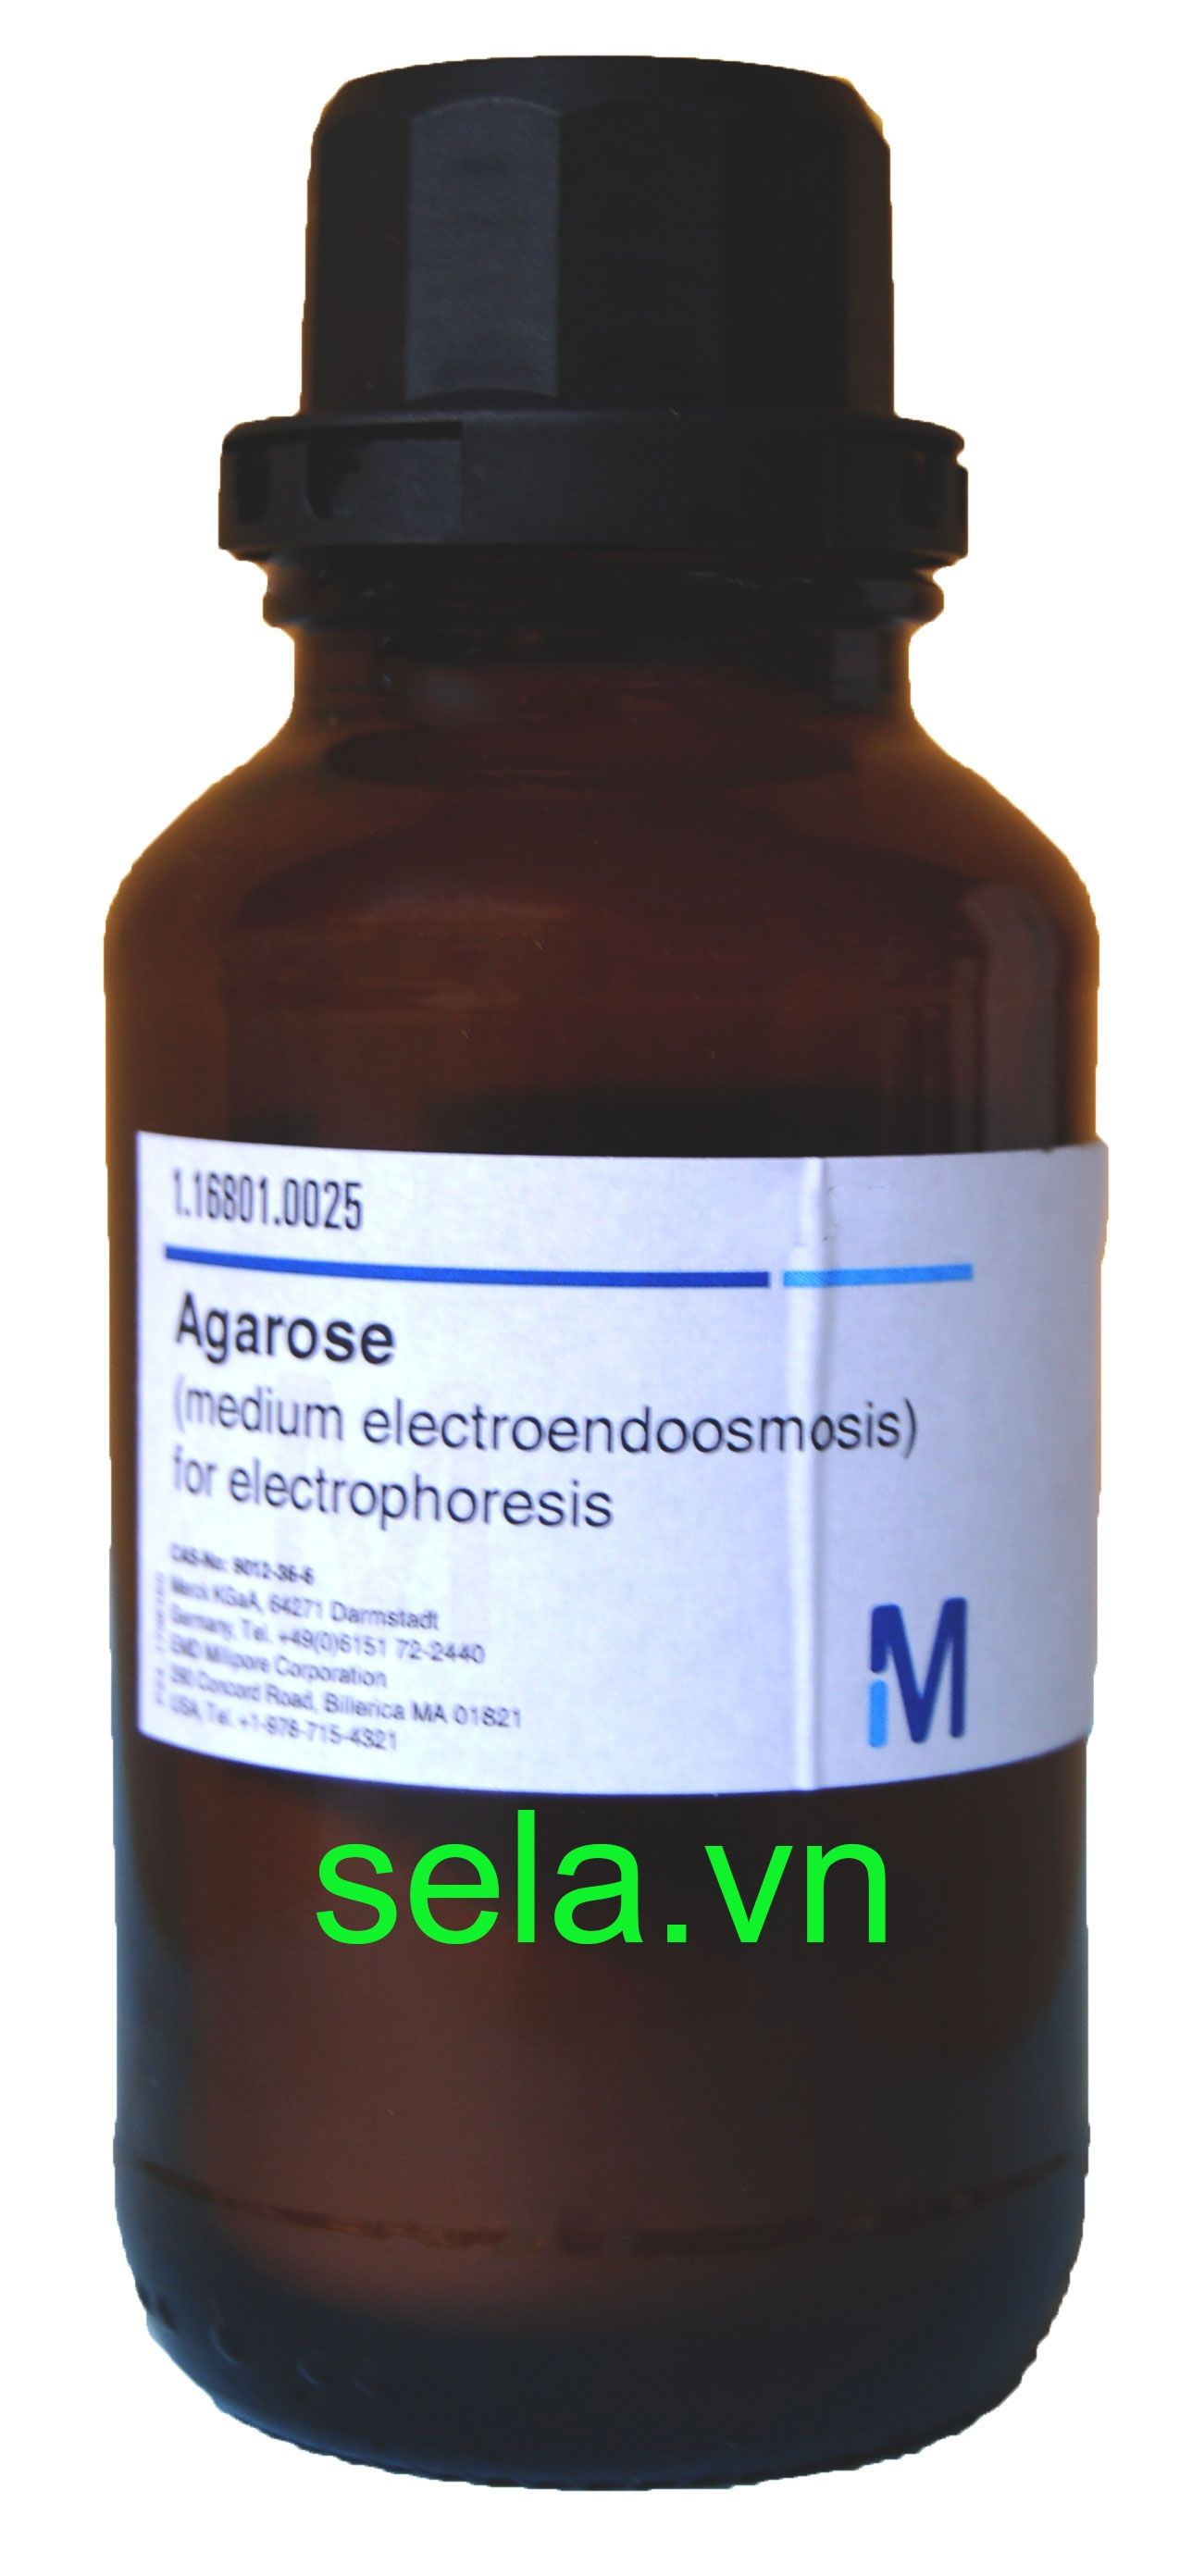 Agarose (medium electroendoosmosis) for electrophoresis